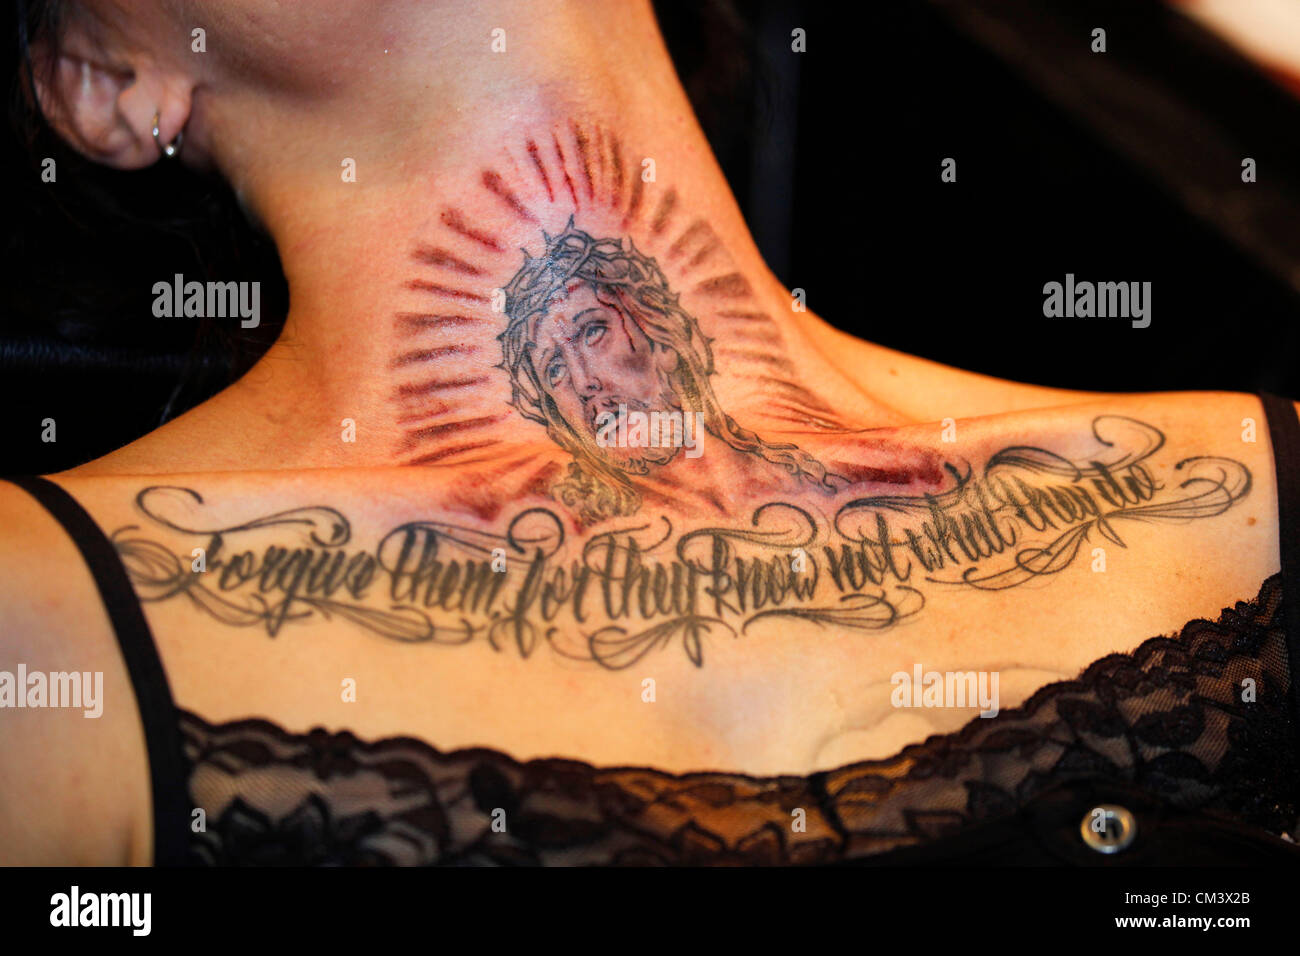 jesus christ tattoo stockfotos jesus christ tattoo bilder alamy. Black Bedroom Furniture Sets. Home Design Ideas